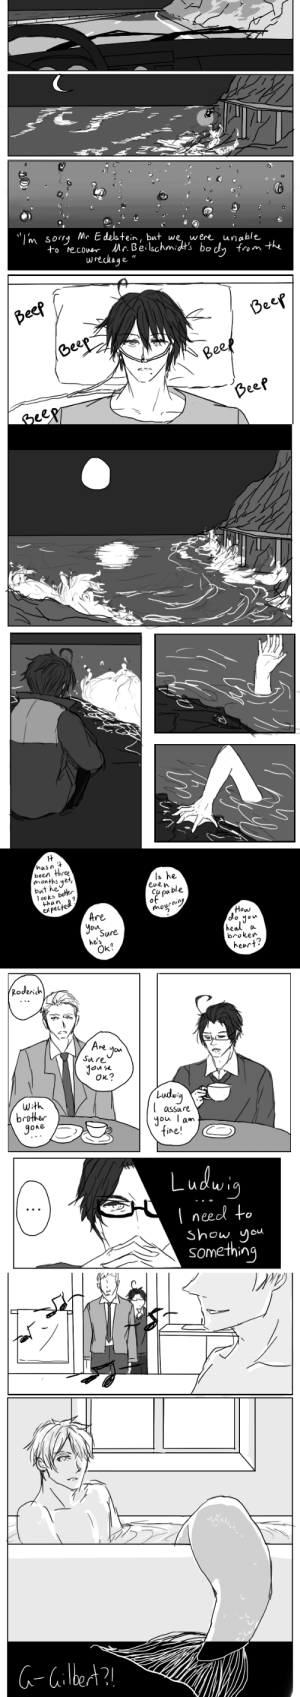 """eunnui:     PruAus week 2016 - Day 3 - Mythologyalways take a break after a few hours of driving  (whoops i misread this as fantasy au when i first saw the prompts WHOOPS!)   : soy Mr E delstein, but we were unable  to necowr M Beschmidt's body fron the  wreckage """"  0  ее   hasn  been thre  months ye*,  but he  l oo ks  eue n  Cu pa ble  than 1  expected  mourning  Are  How  eala  brokew  kes  Ok!  Roderic  Sure  Ludu  with  brather  assu  ou am  inNe  nee  Show uou  Something  0 eunnui:     PruAus week 2016 - Day 3 - Mythologyalways take a break after a few hours of driving  (whoops i misread this as fantasy au when i first saw the prompts WHOOPS!)"""